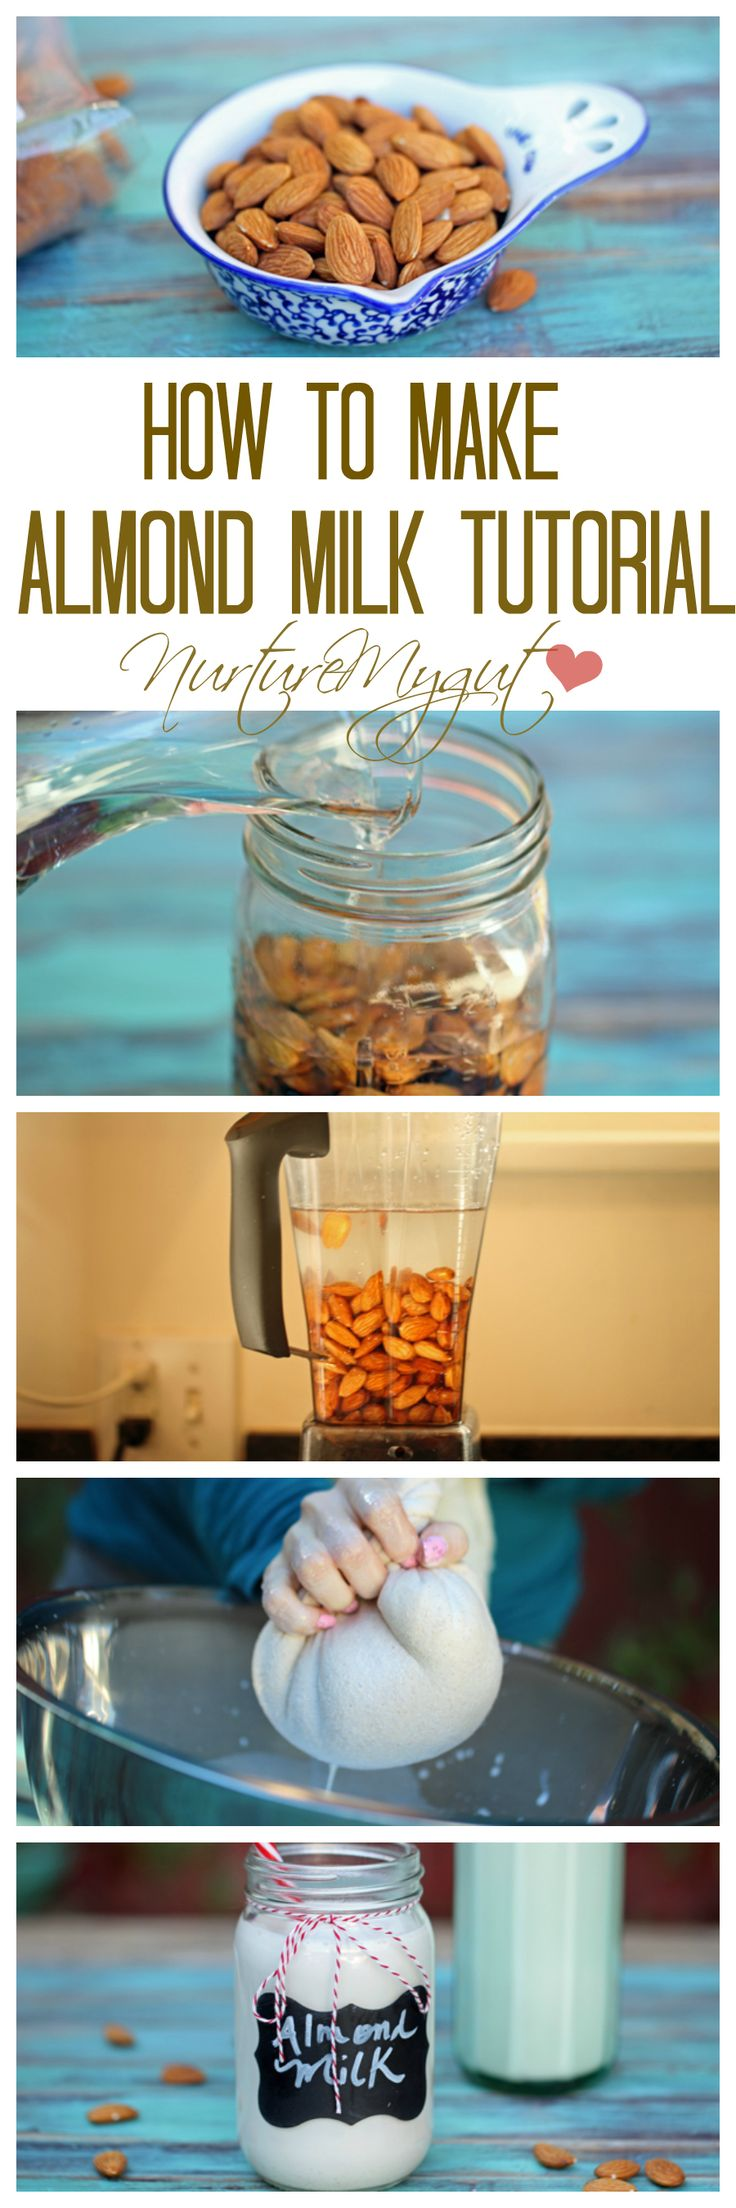 Learn how to make almond milk with this amazing step by step tutorial!  You will never want to buy store bought almond milk after trying this!